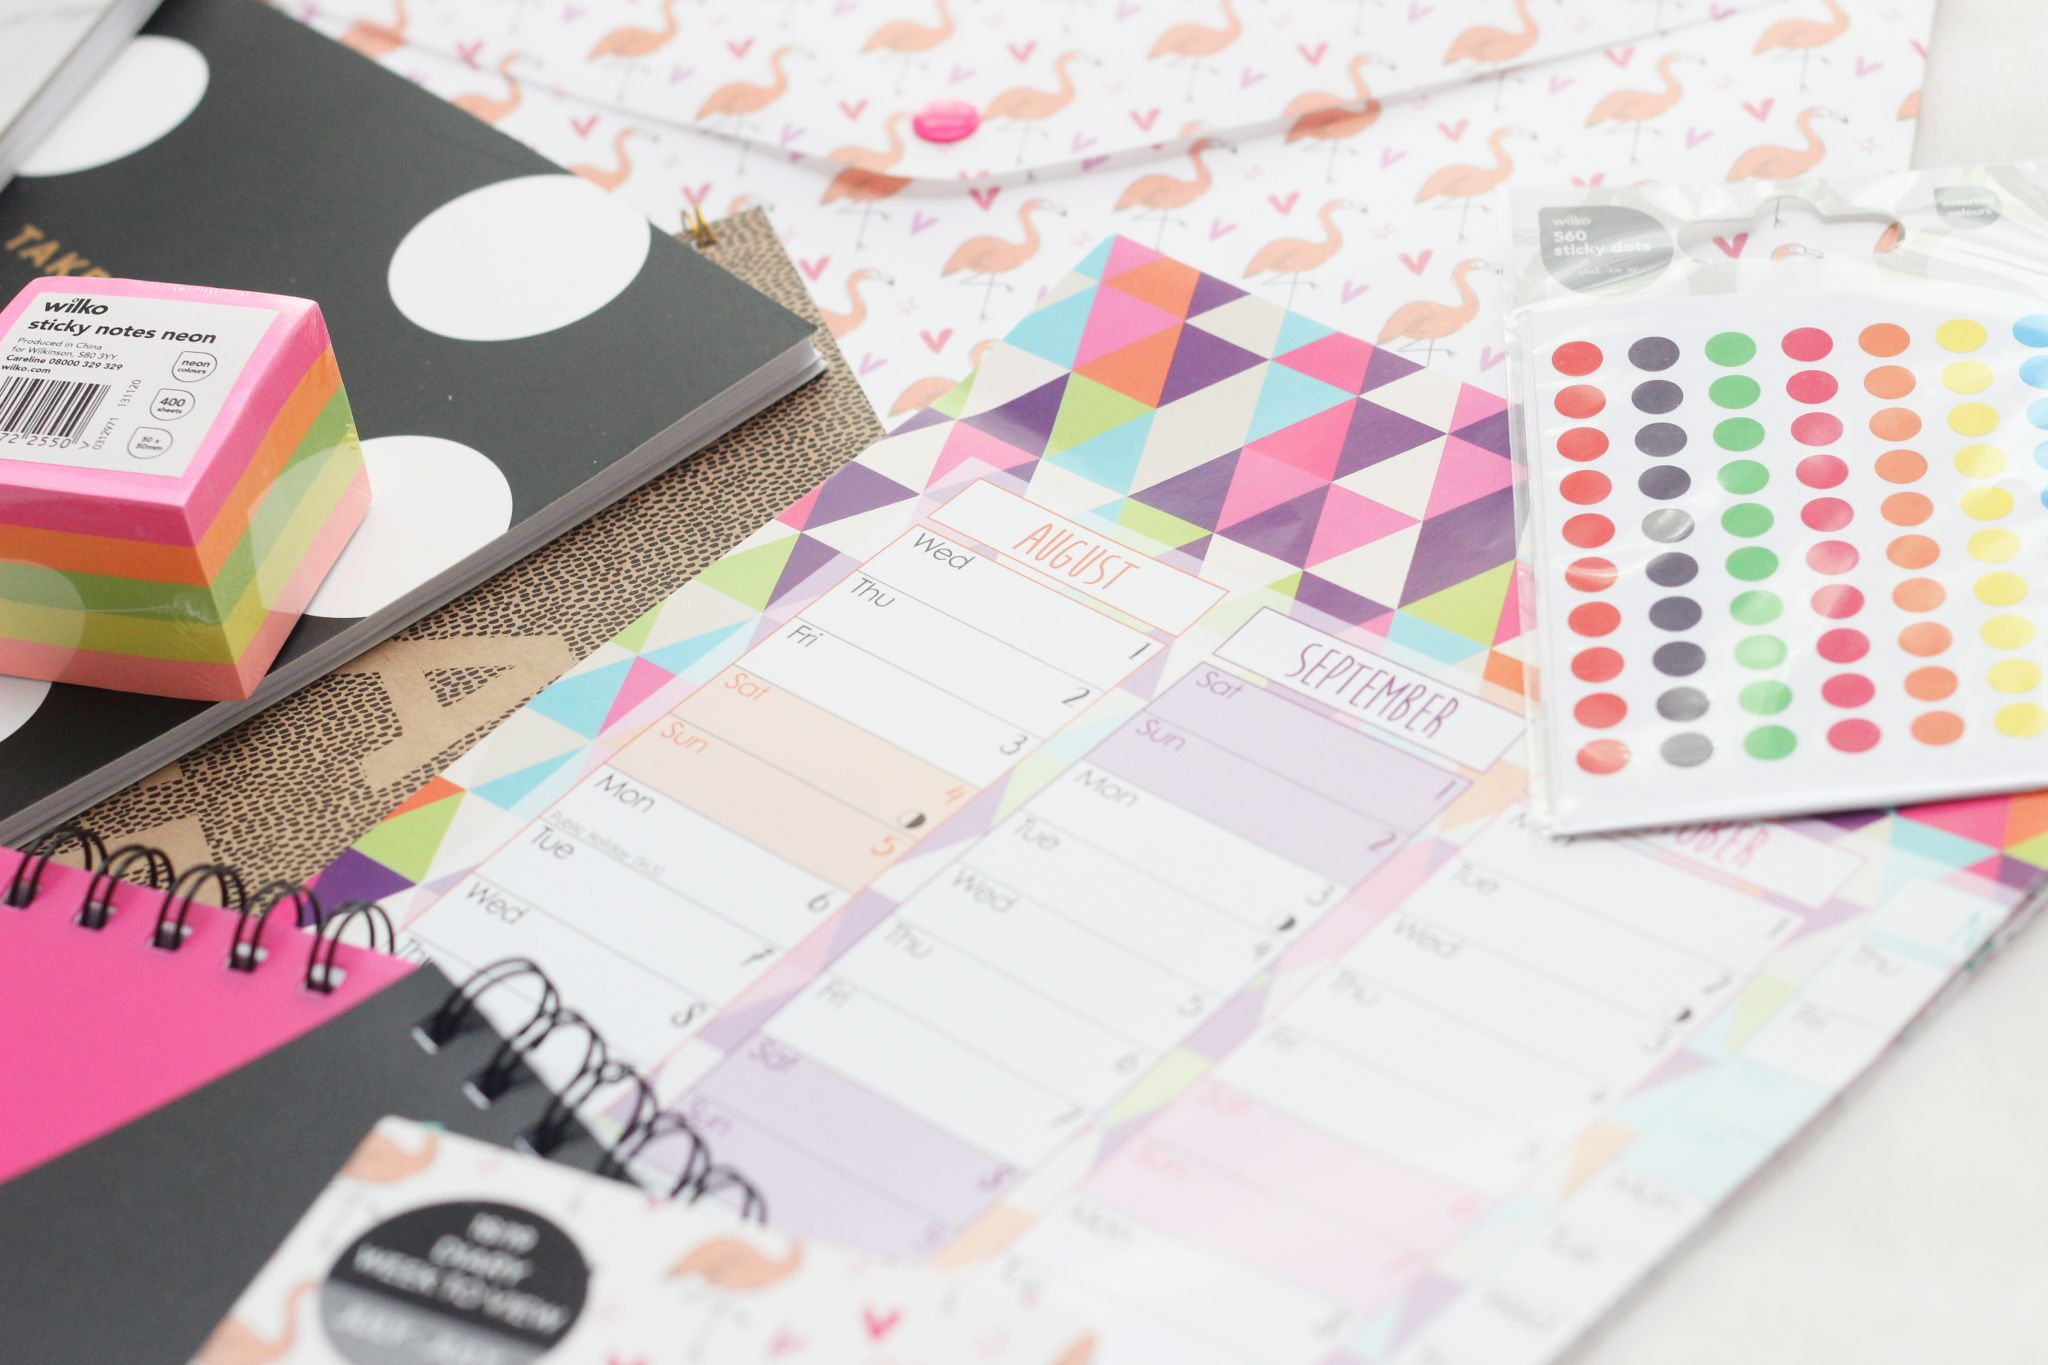 first year stationery wall planner and sticky dots